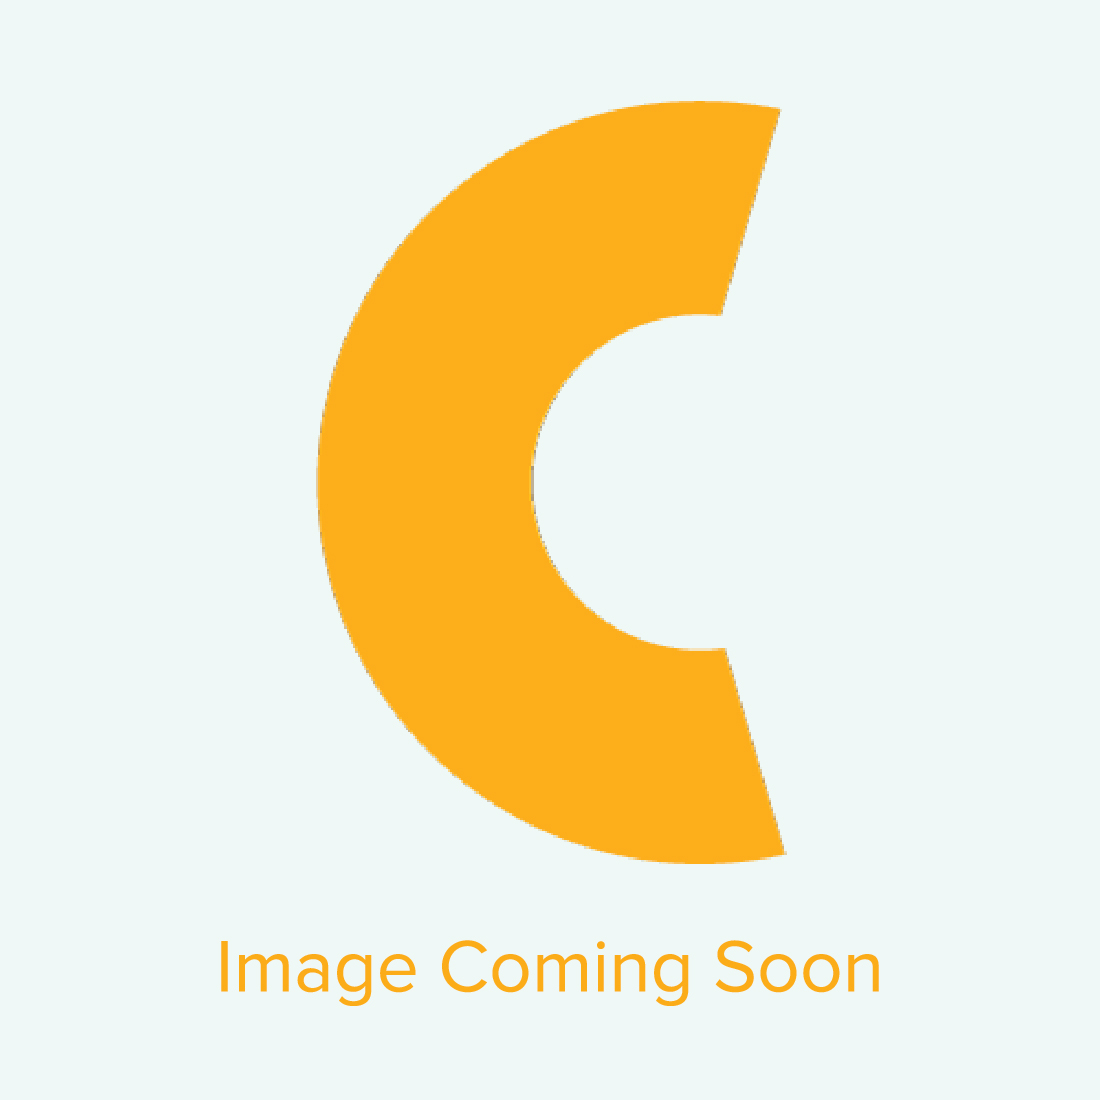 Metal Coffee Mug with Lid - 10 oz.